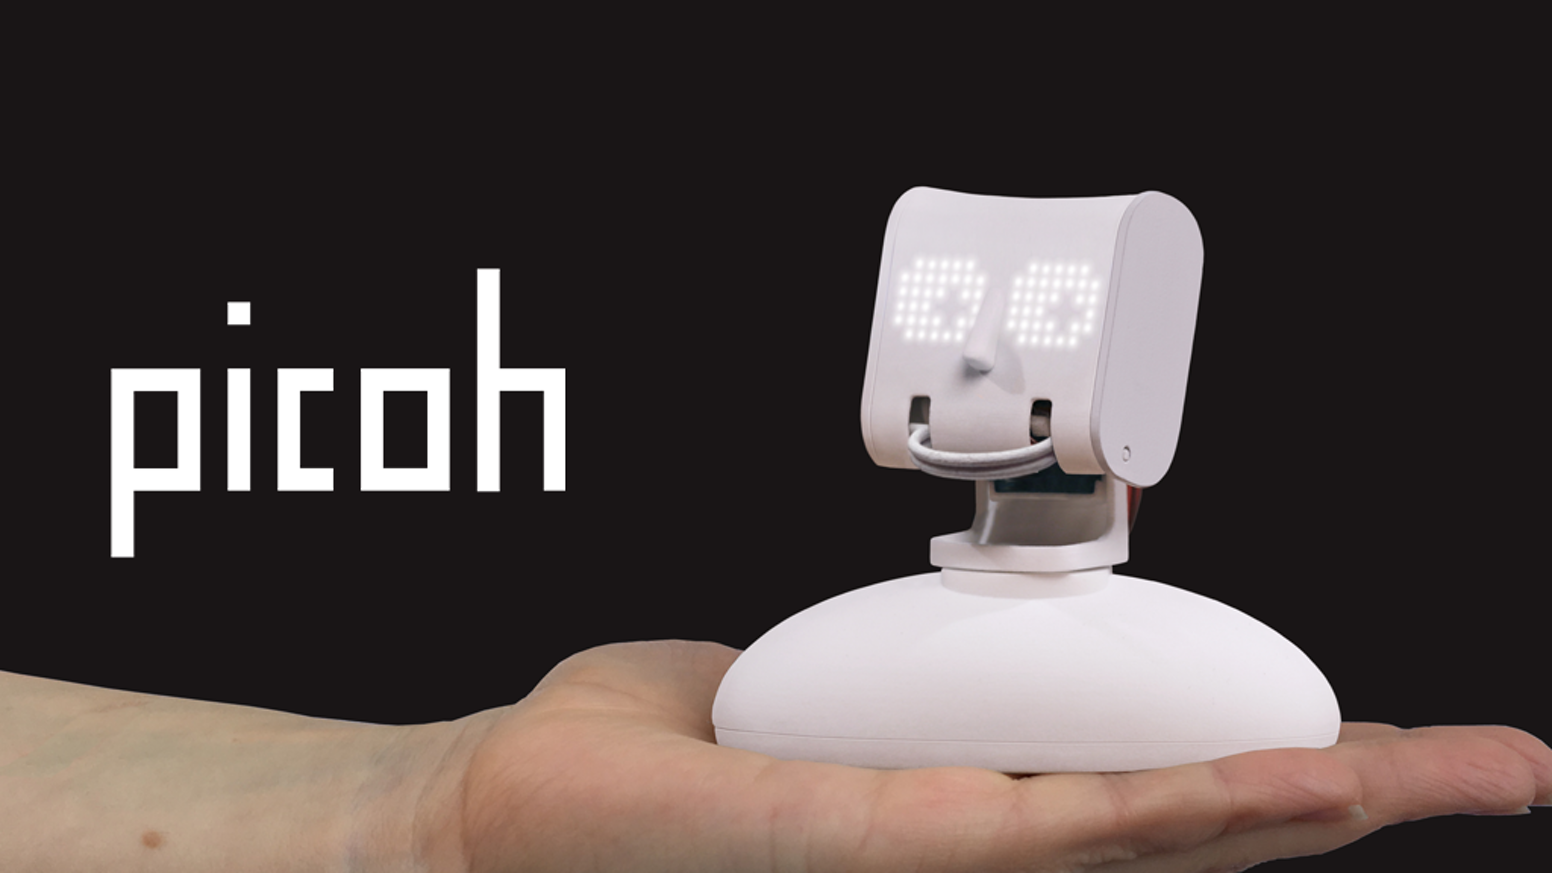 Picoh is a programmable robot that's as smart as you make it. A fun and creative tool for exploring computing, AI and robotics.